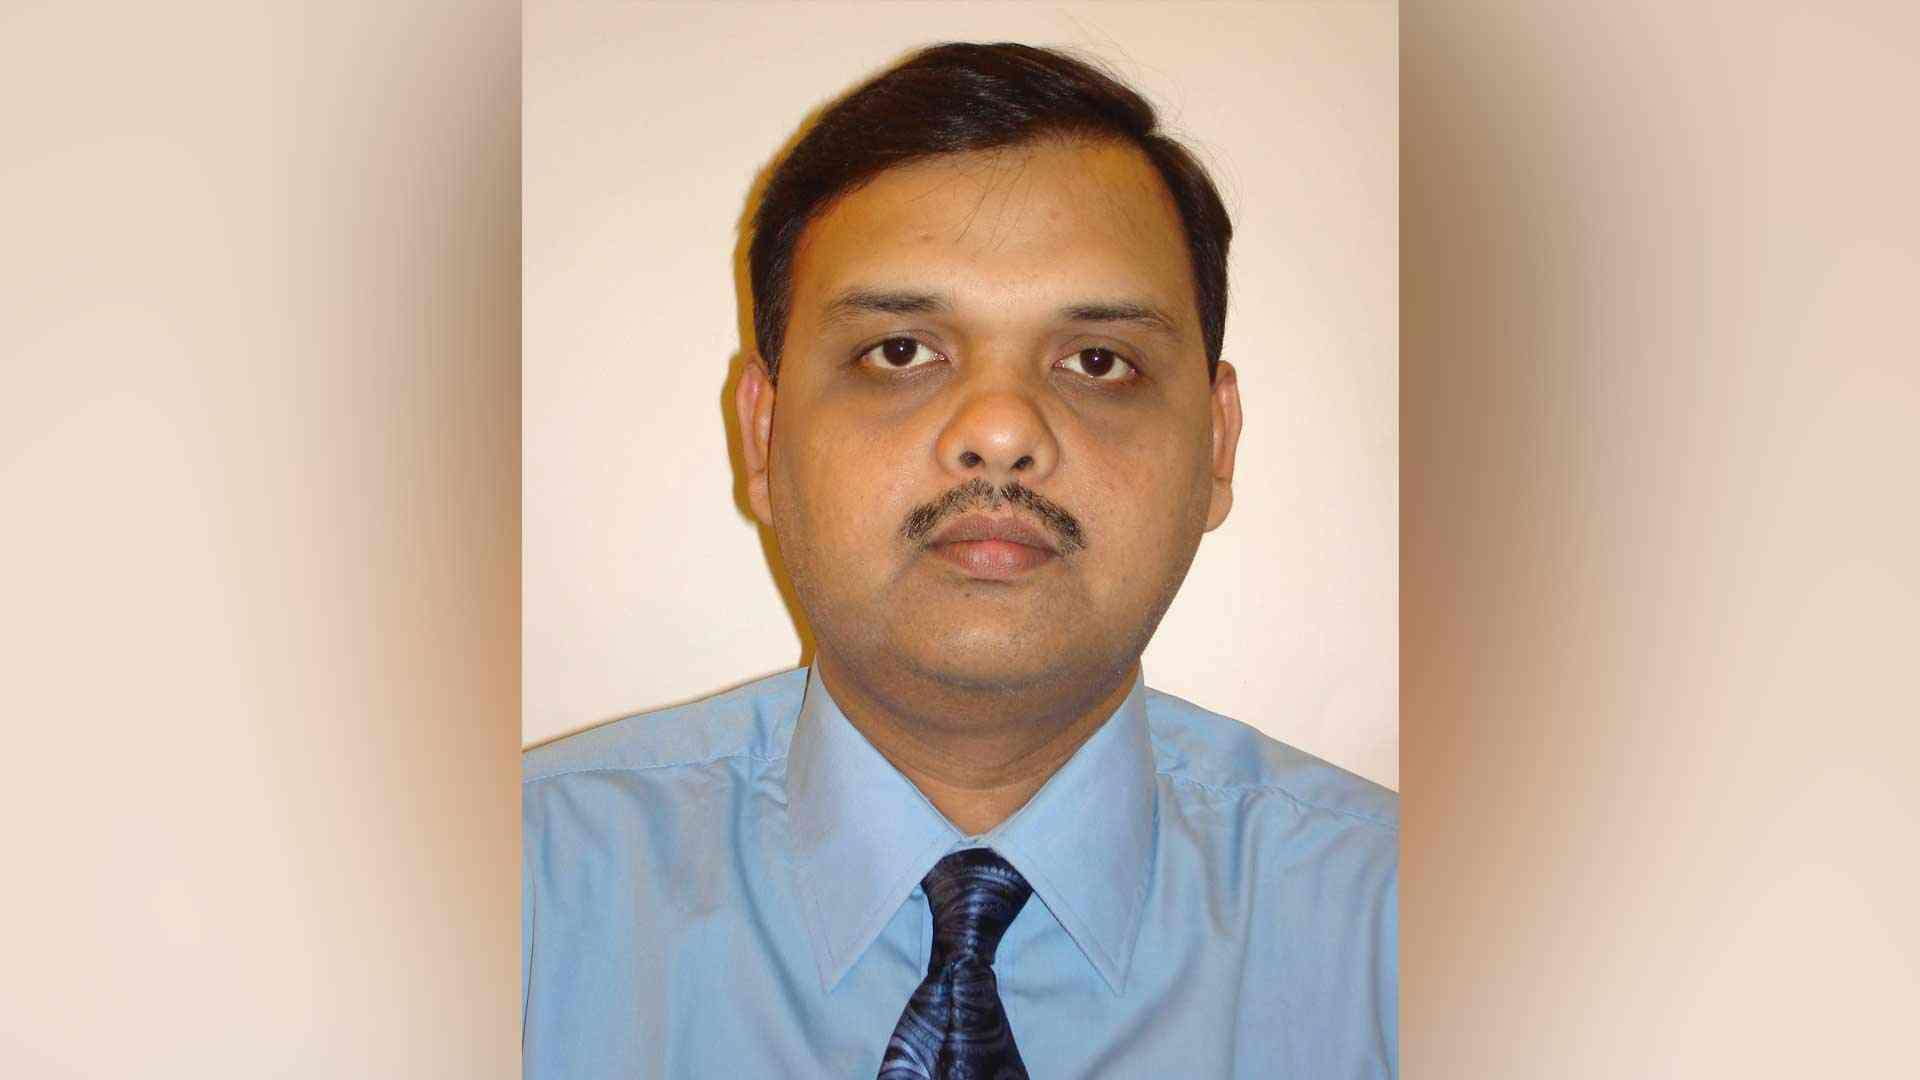 Ananda Roy is a Senior Research Scientist in Nanomaterials and Composites at CPI